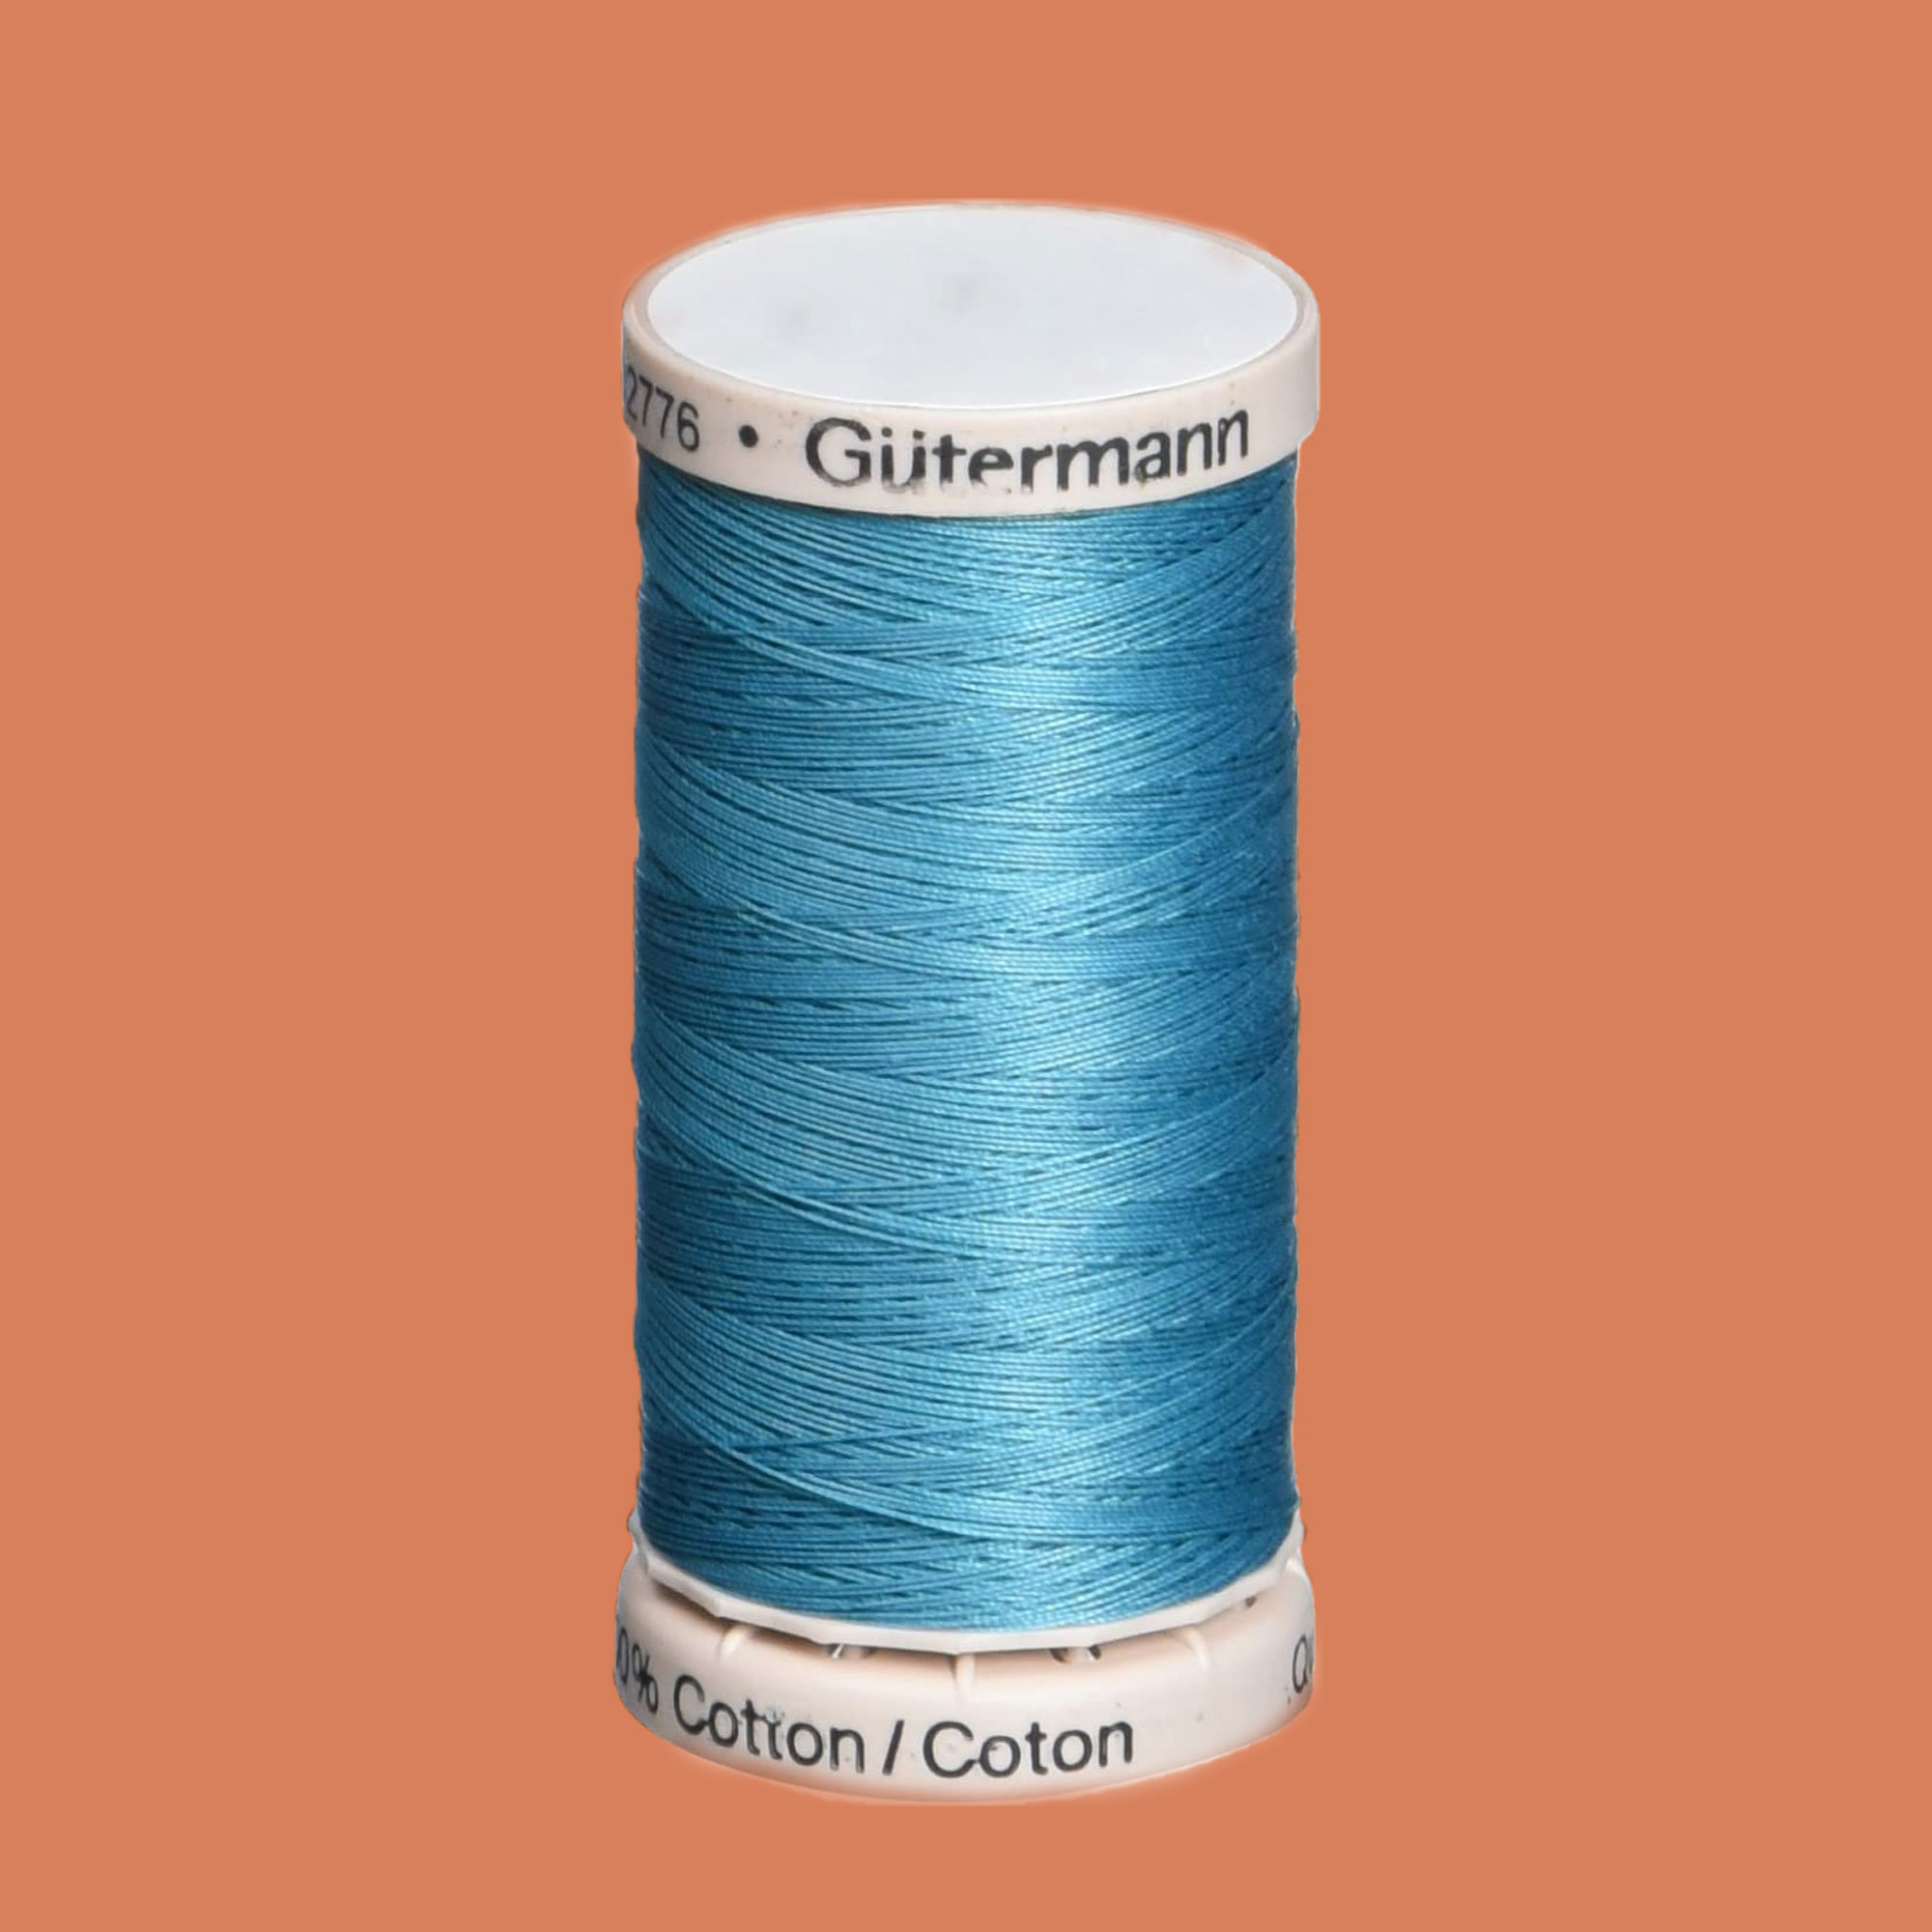 teal spool of quilting thread